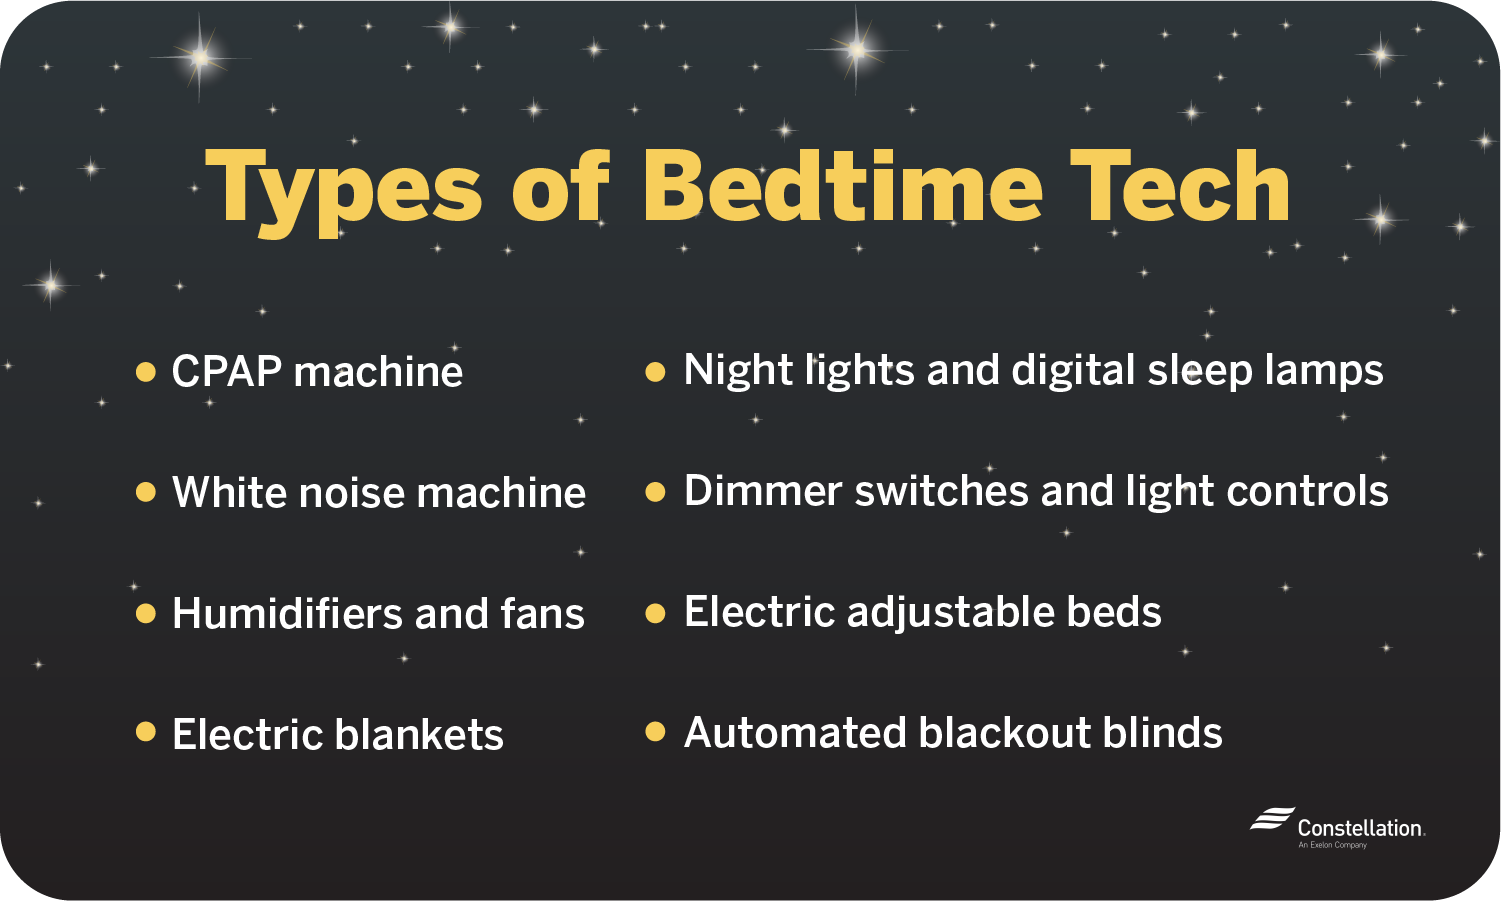 types of bedtime technology